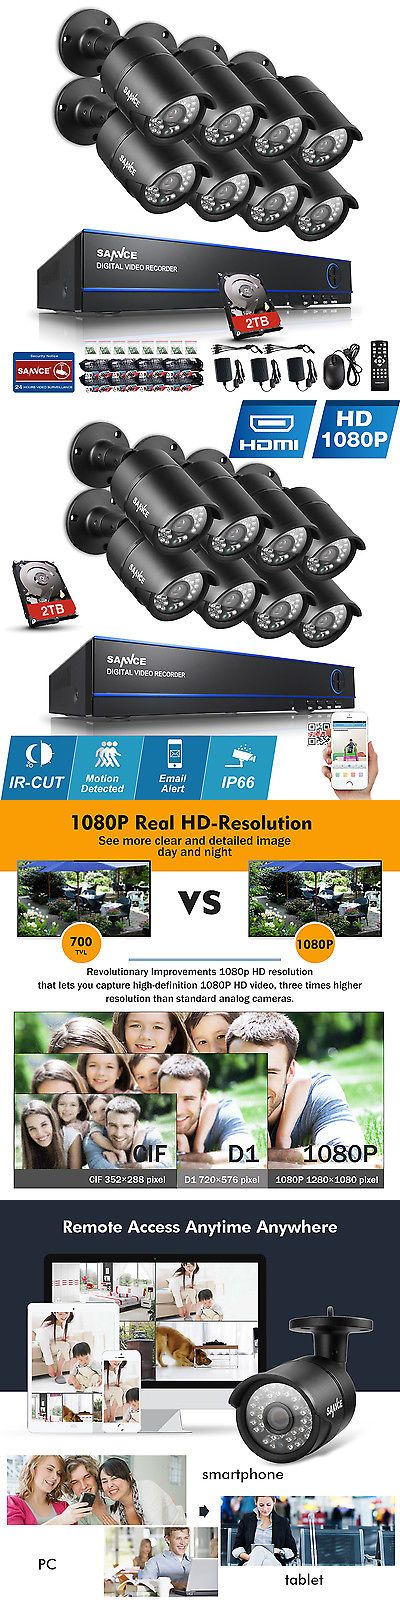 Surveillance Security Systems: Sannce 8Ch Hd 2.0Mp Hdmi Dvr 2Tb Hdd 1080P Outdoor Home Security Camera System BUY IT NOW ONLY: $429.99